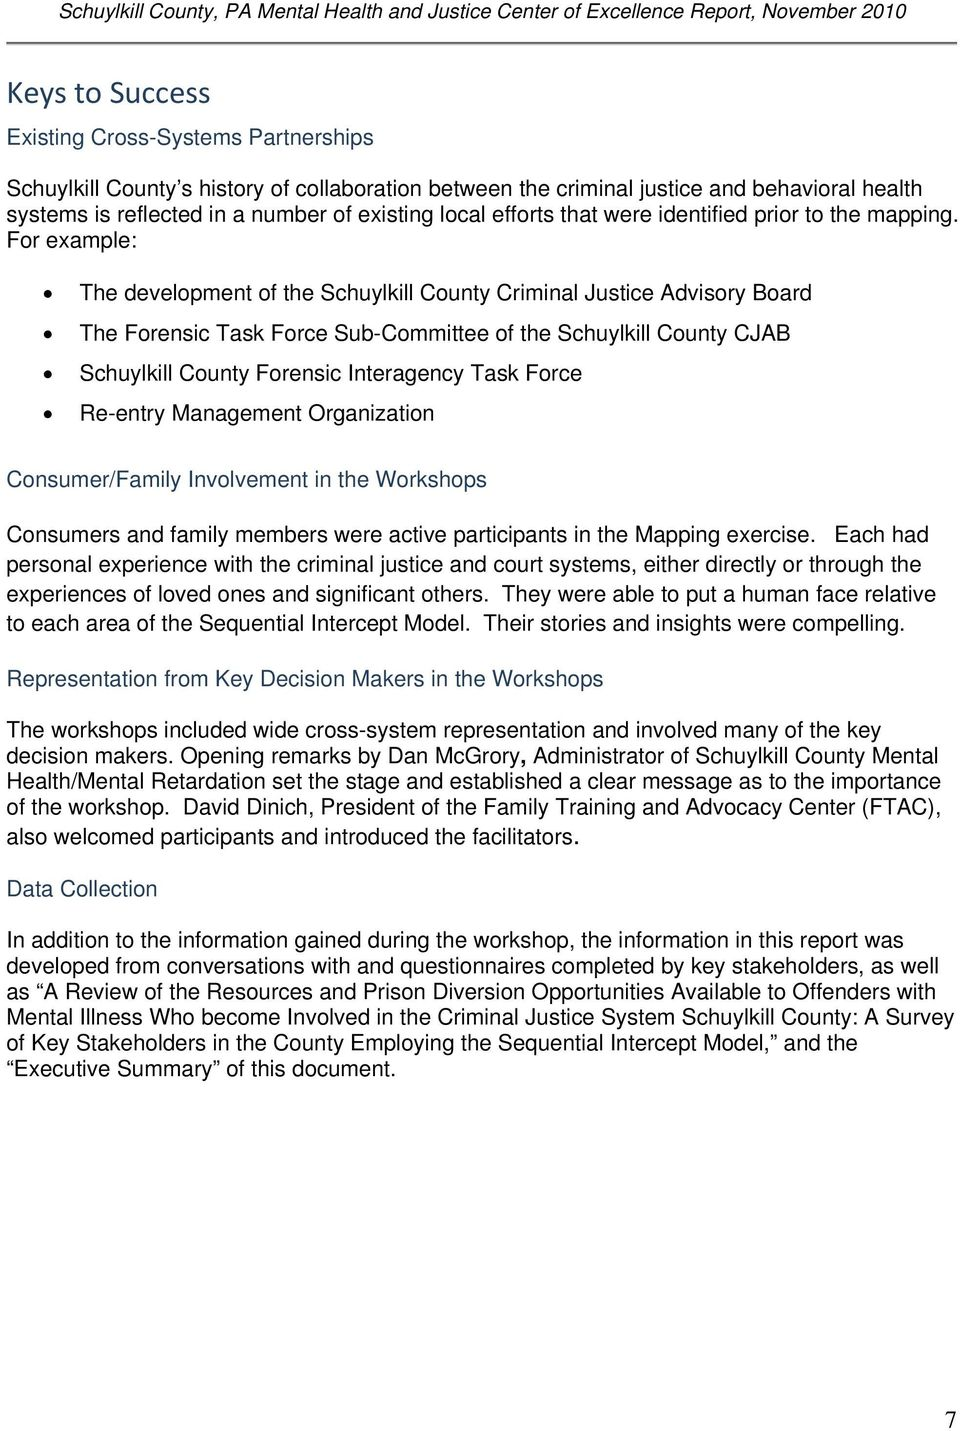 For example: The development of the Schuylkill County Criminal Justice Advisory Board The Forensic Task Force Sub-Committee of the Schuylkill County CJAB Schuylkill County Forensic Interagency Task